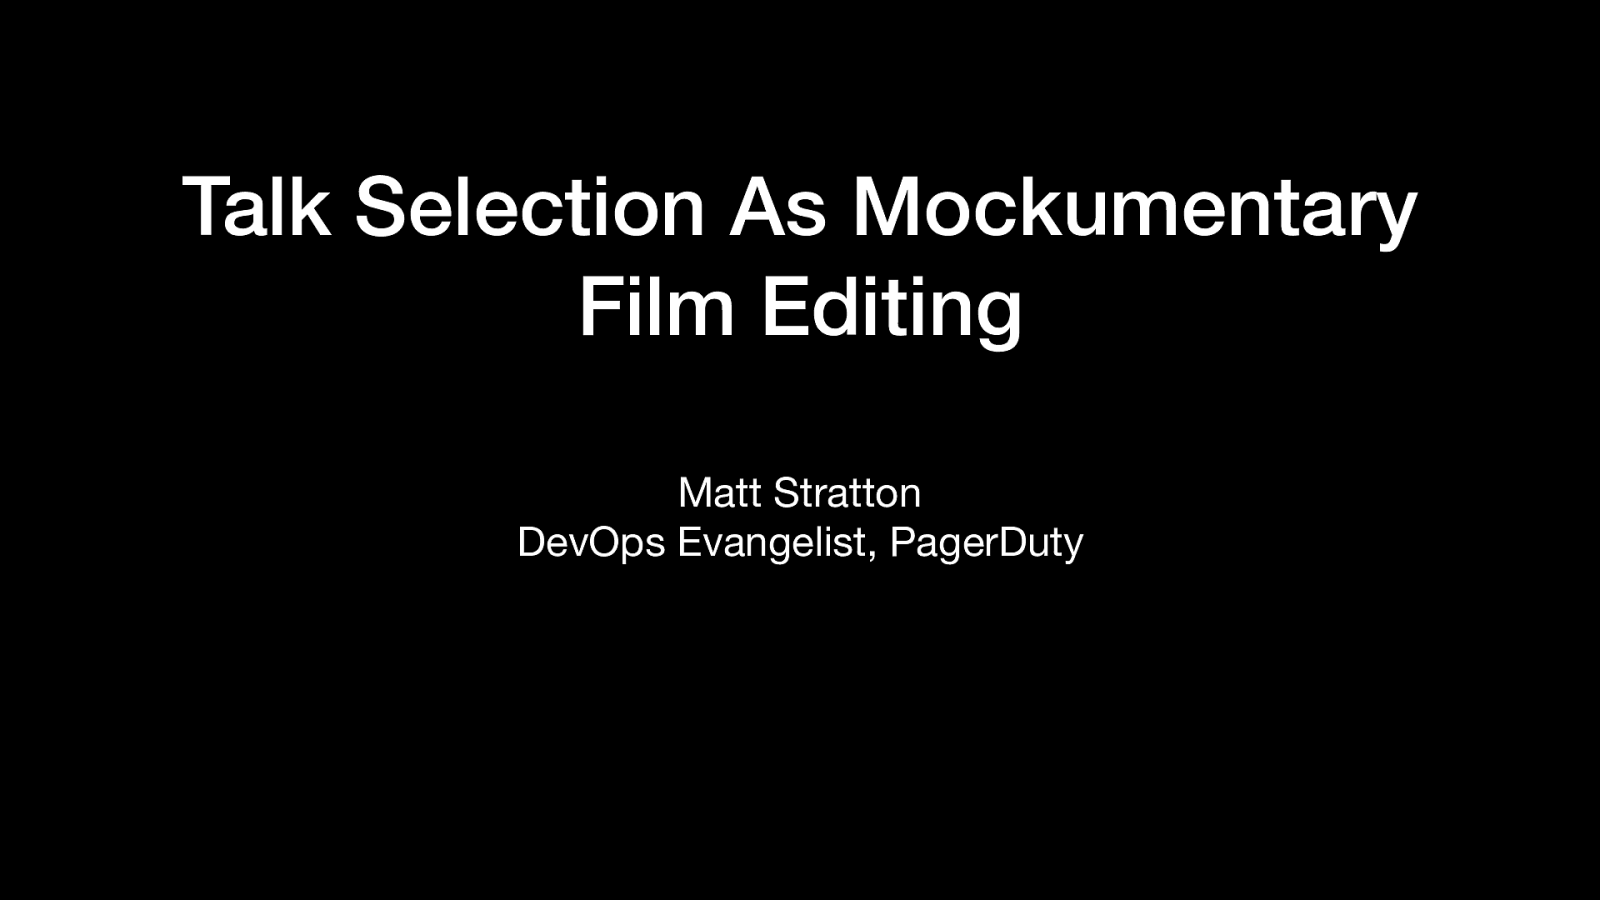 Talk Selection As Mockumentary Film Editing